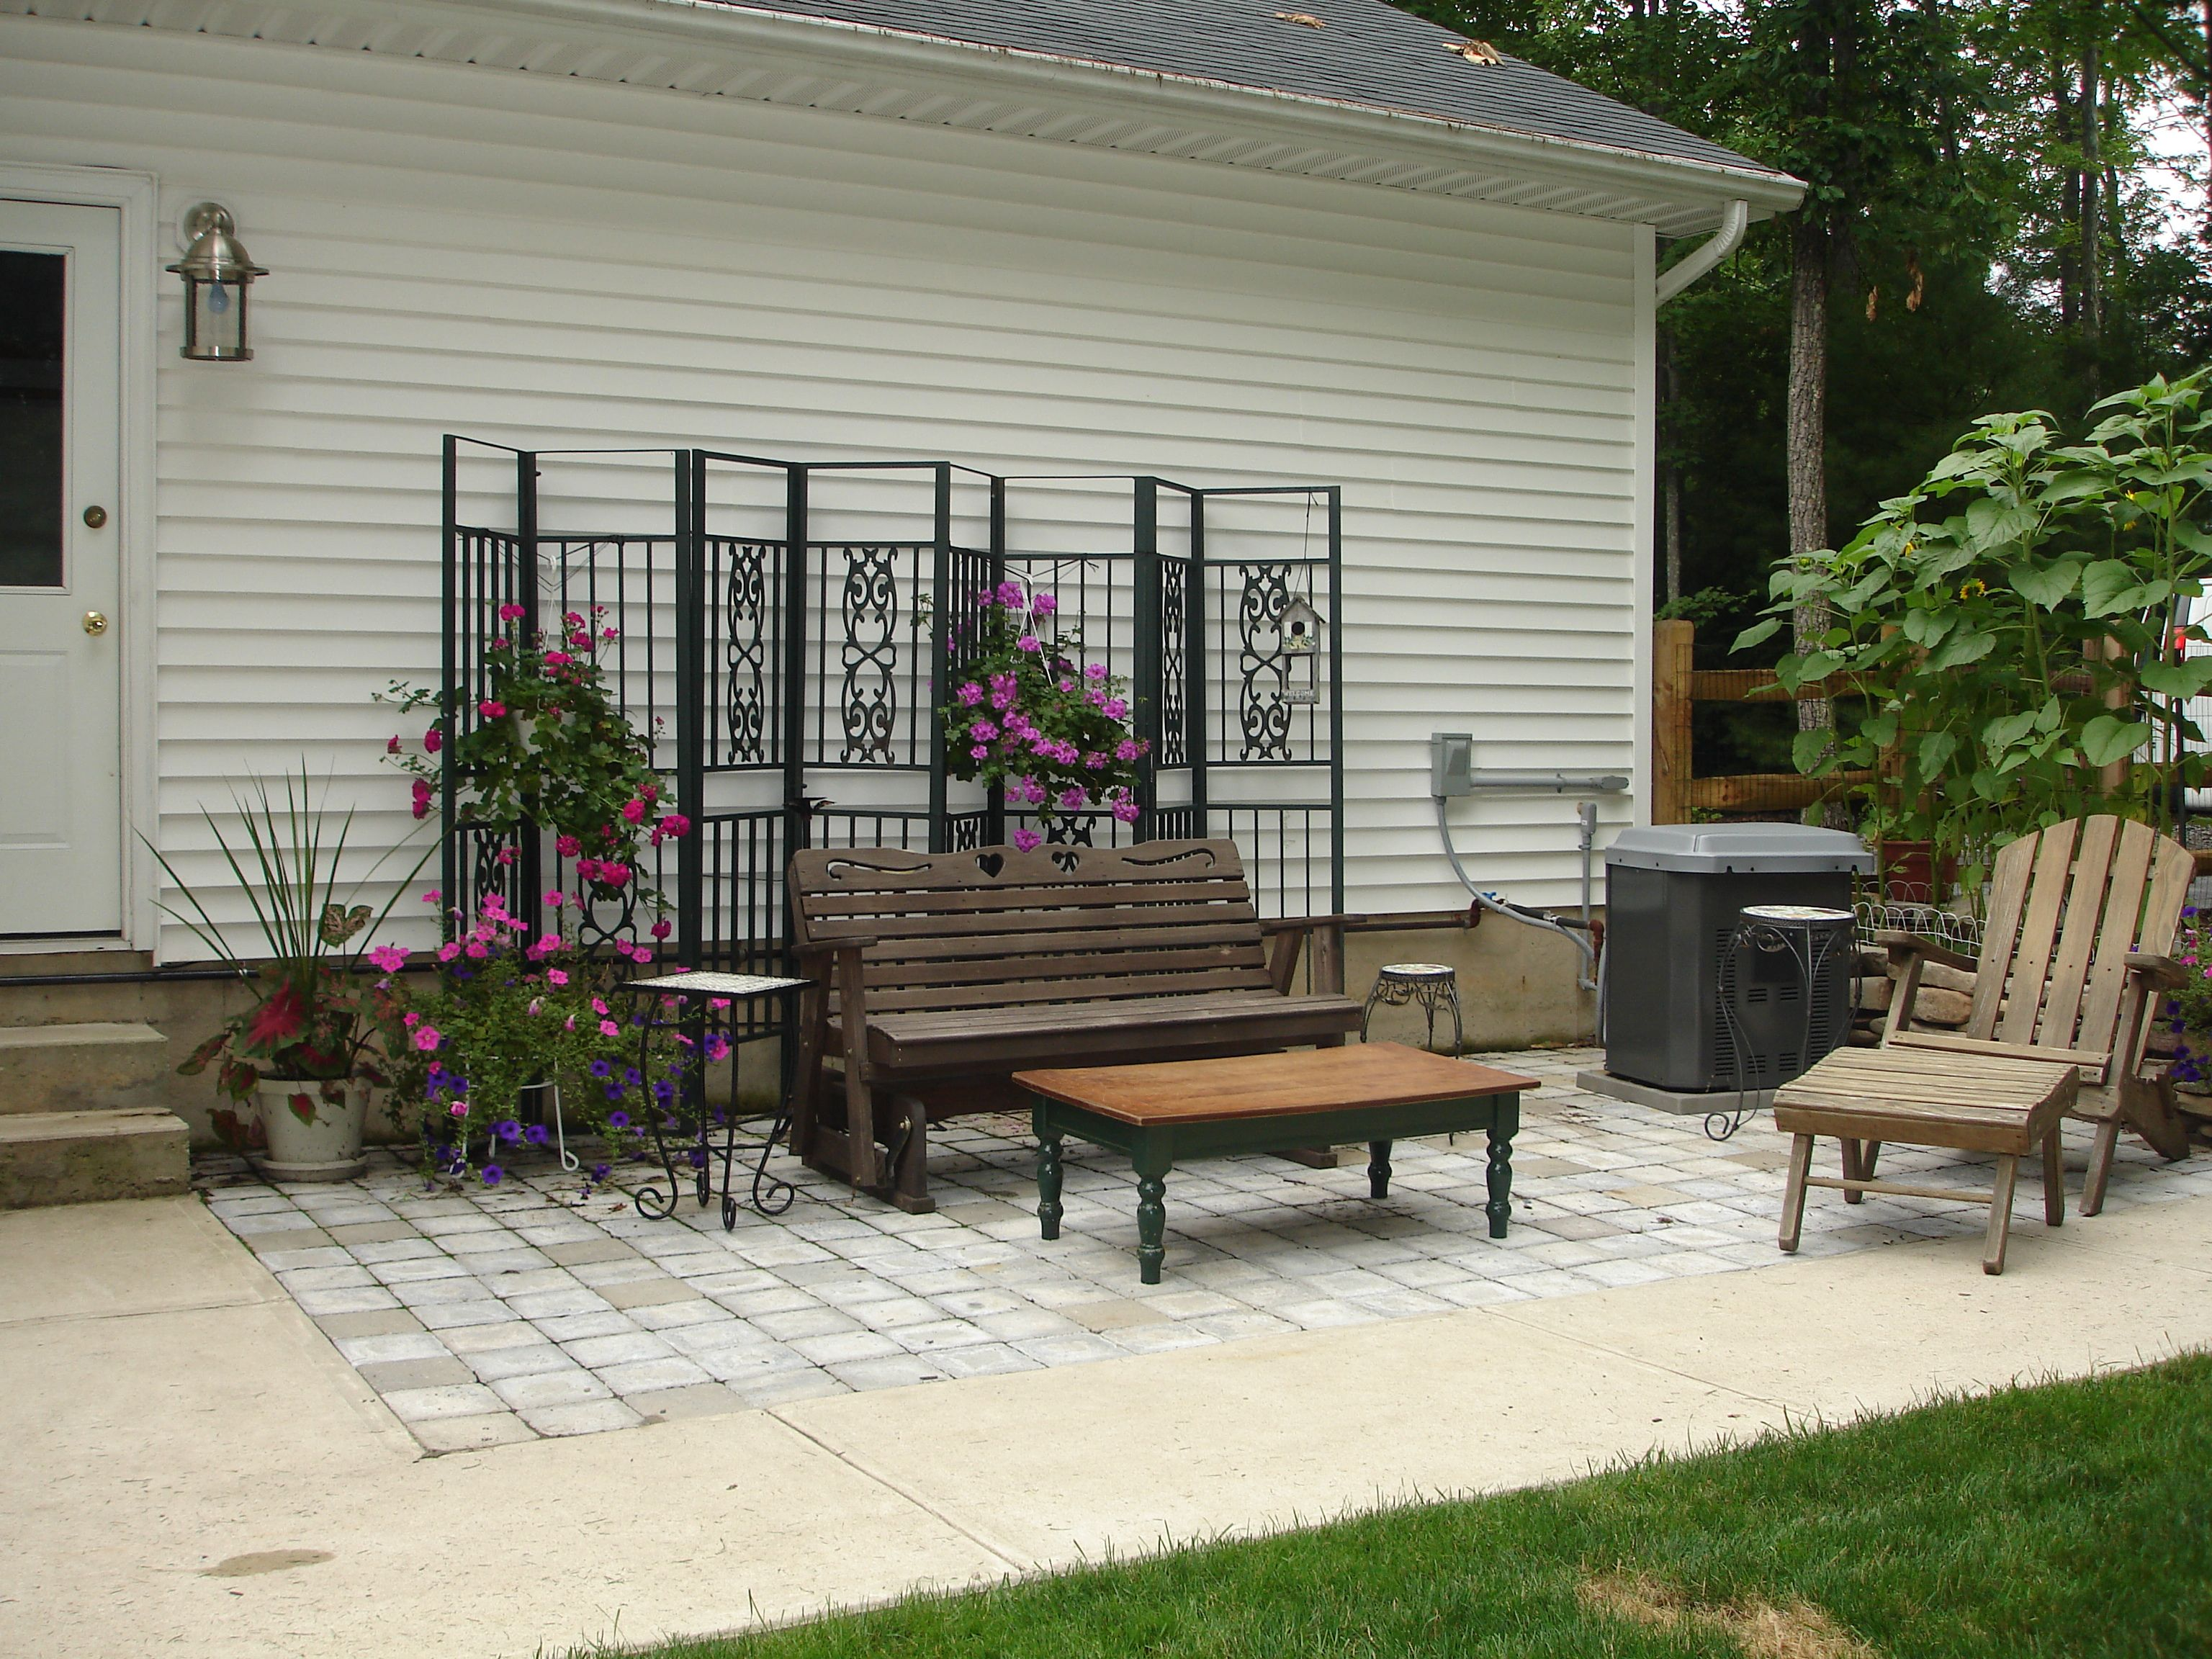 Sitting Area Made From Recycled Gazebo Frame And Patio Blocks Off Craigslist